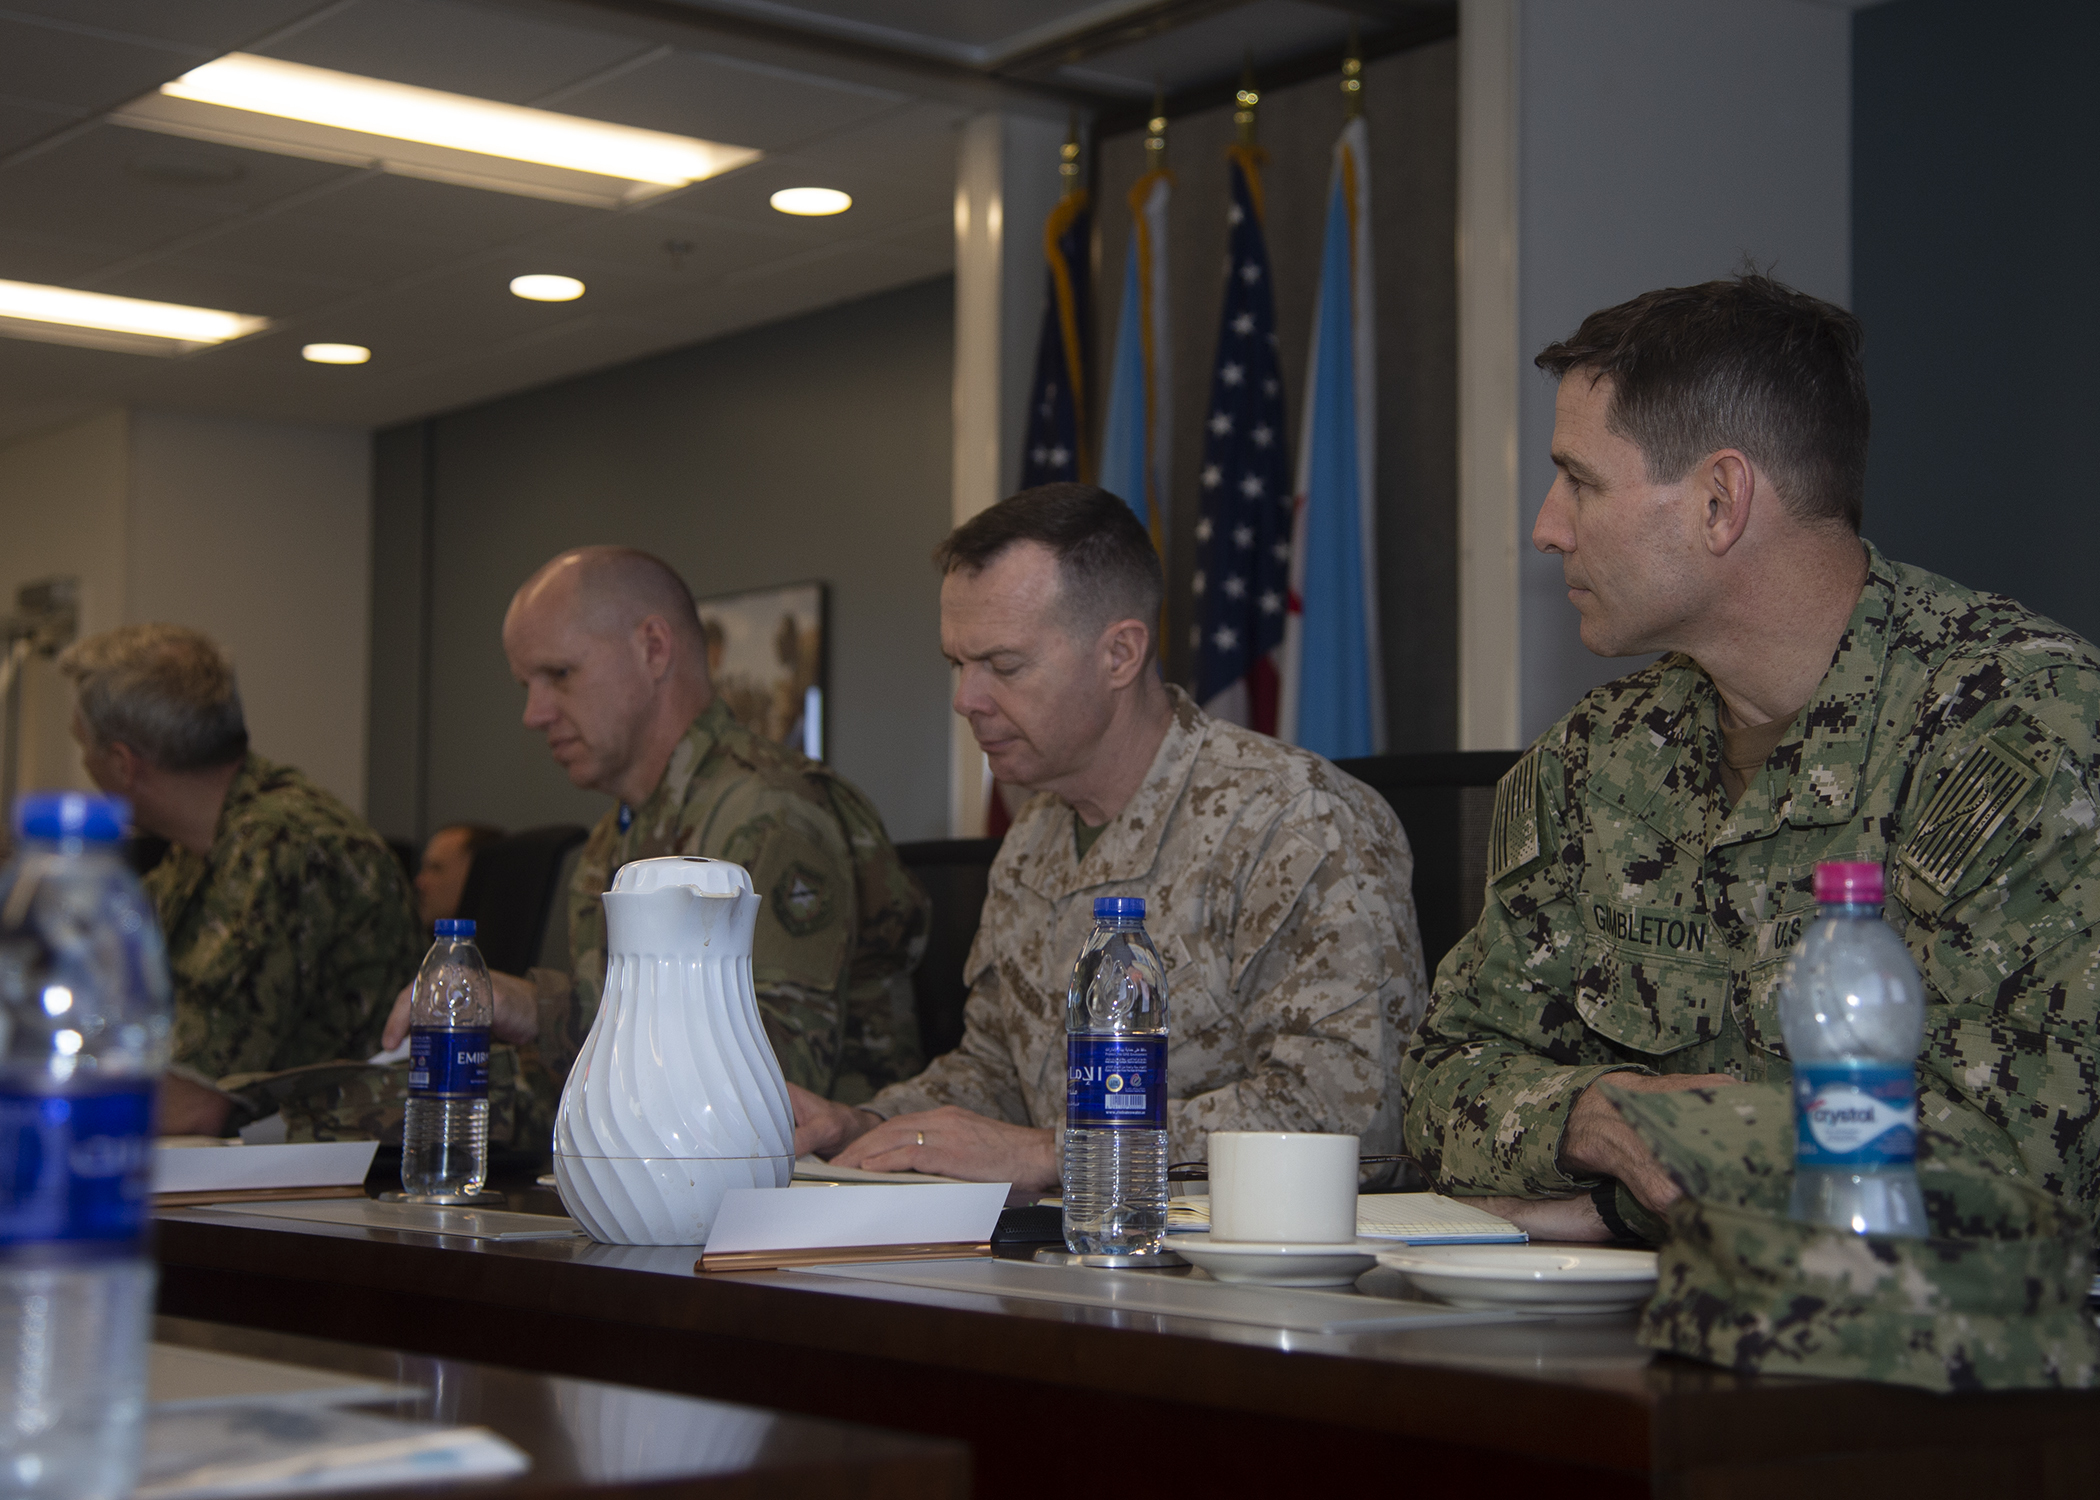 U.S. military senior officers participate in the Capstone Military Leadership Program classroom session at Camp Lemonnier, Djibouti, Feb. 13, 2019. Capstone is a joint-service professional military education course for newly-promoted brigadier generals and rear admirals serving in the U.S. military. (U.S. Navy photo by Mass Communication Specialist 1st Class Nick Scott)